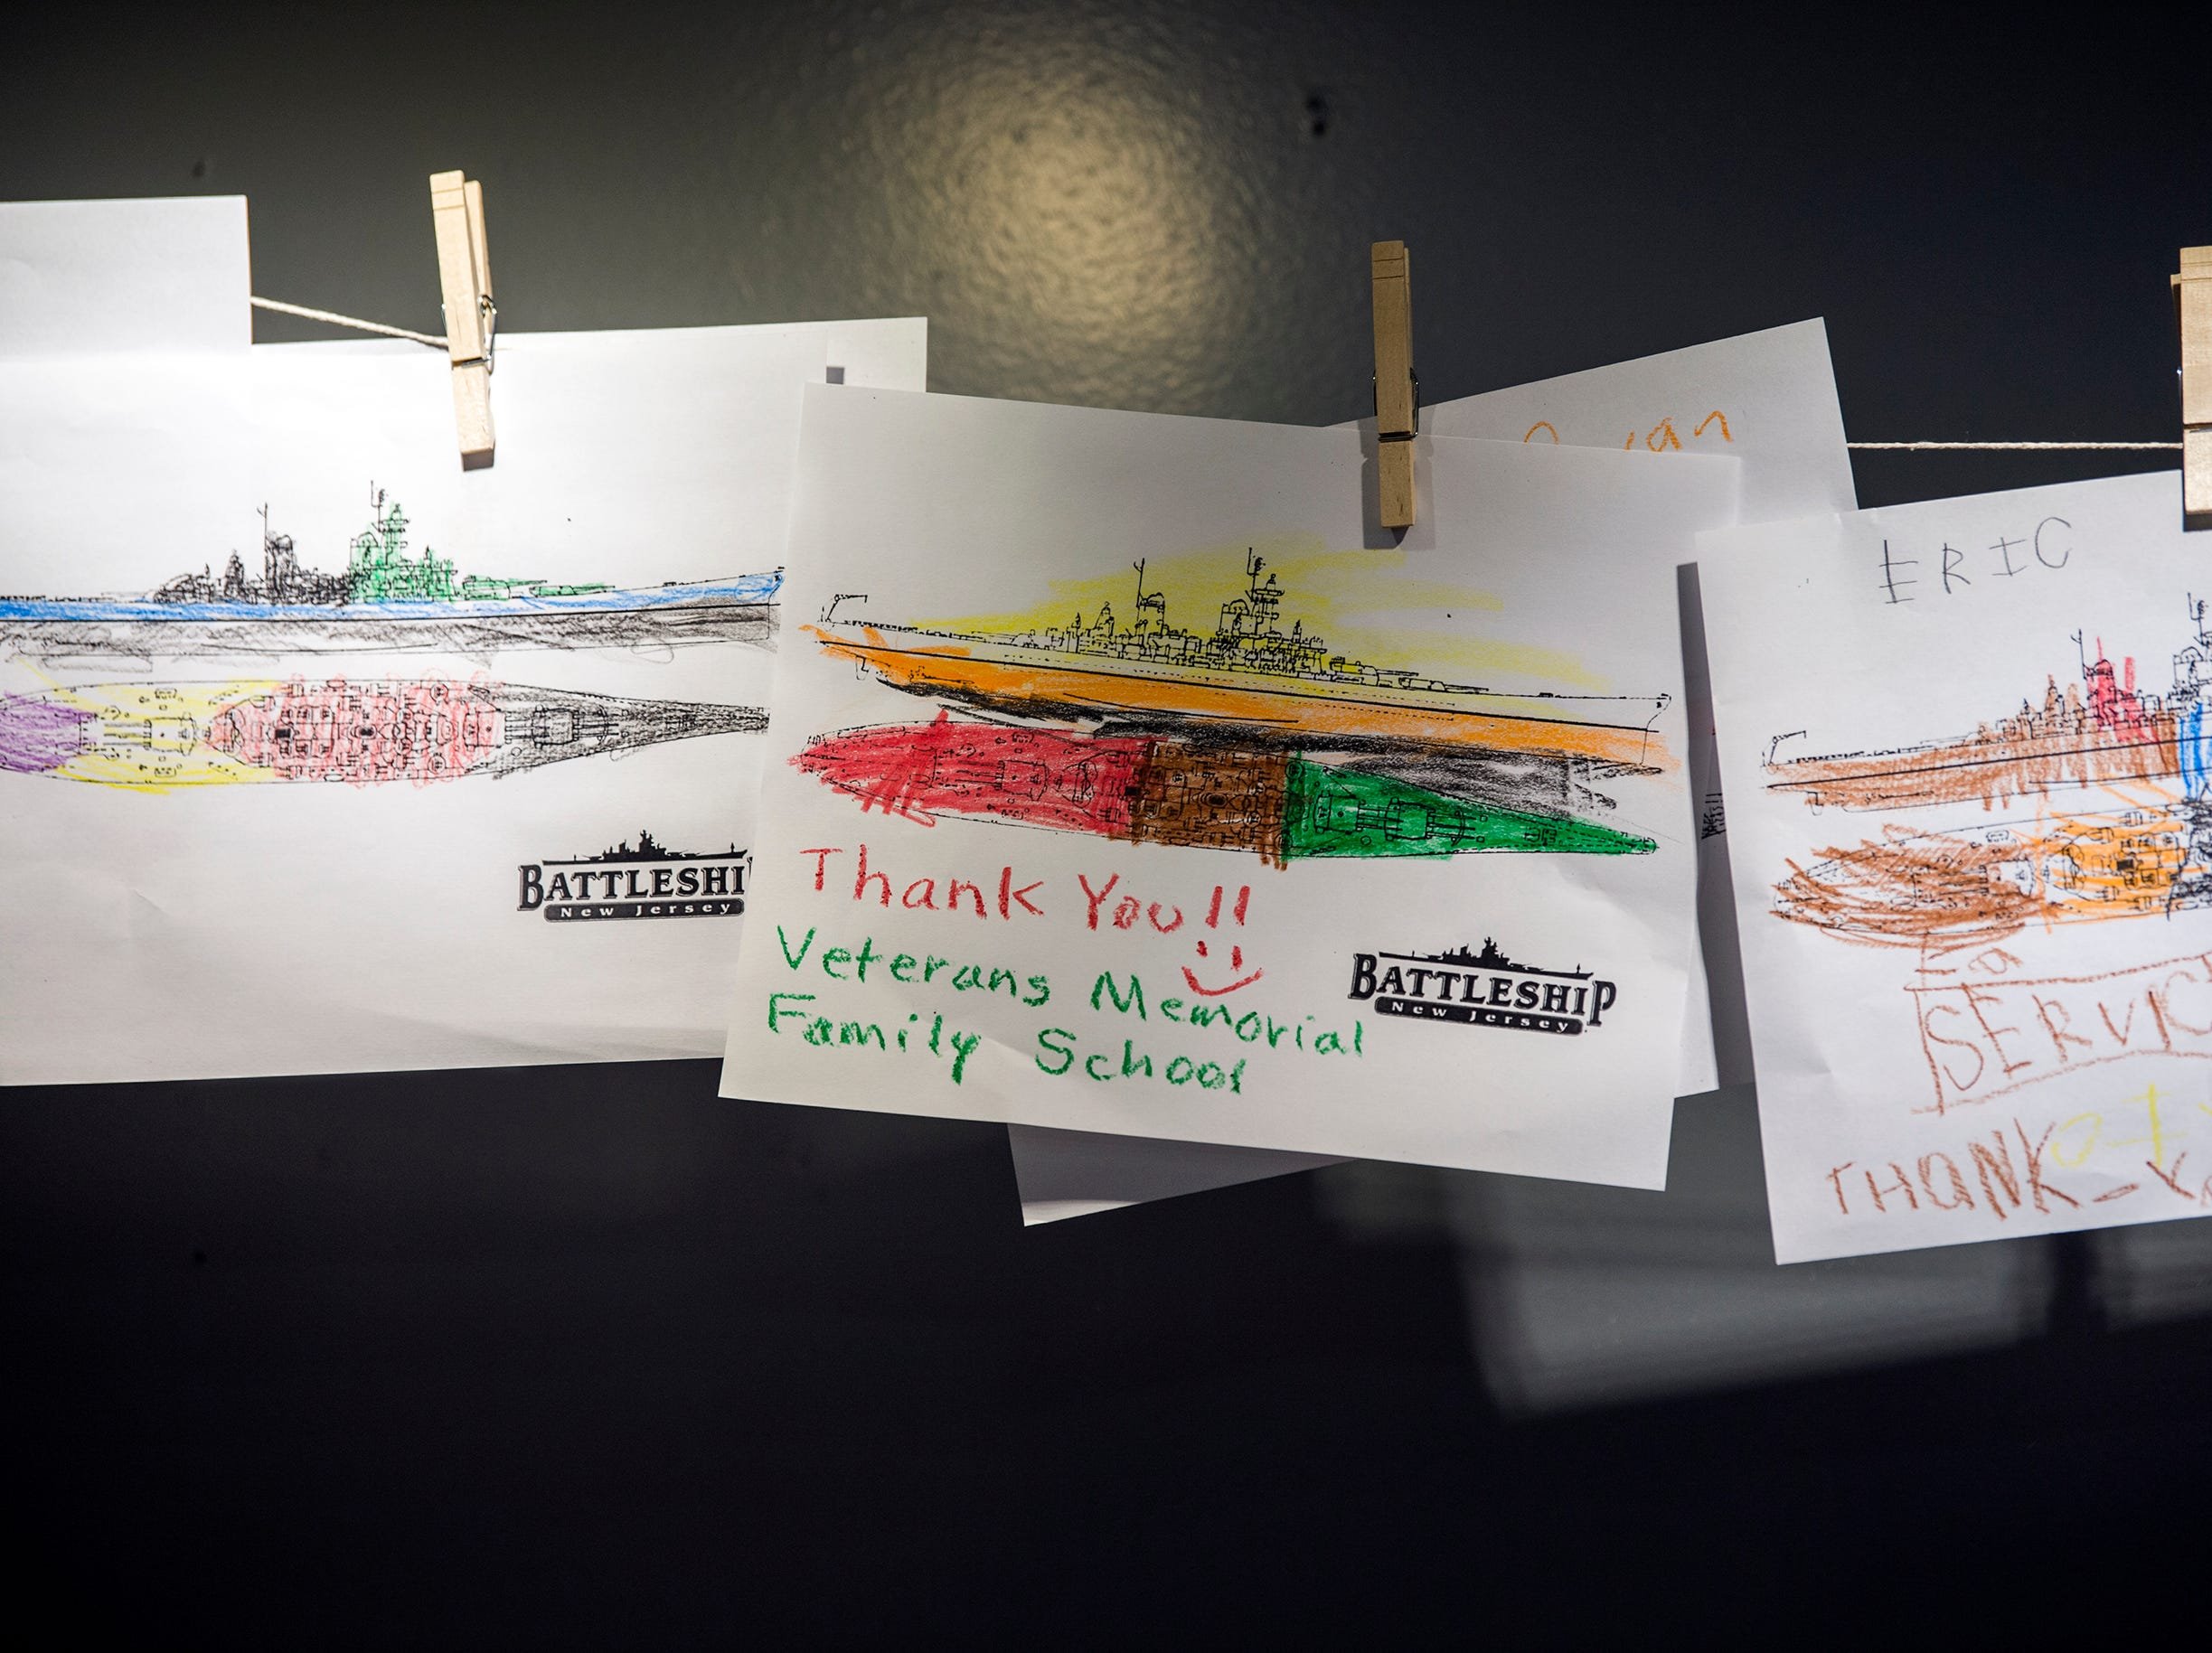 Thankyou notes from students are hung up during the unveiling of Jason's Kids Kompartment Thursday, March 21, 2019 aboard the USS New Jersey battleship in Camden, N.J.